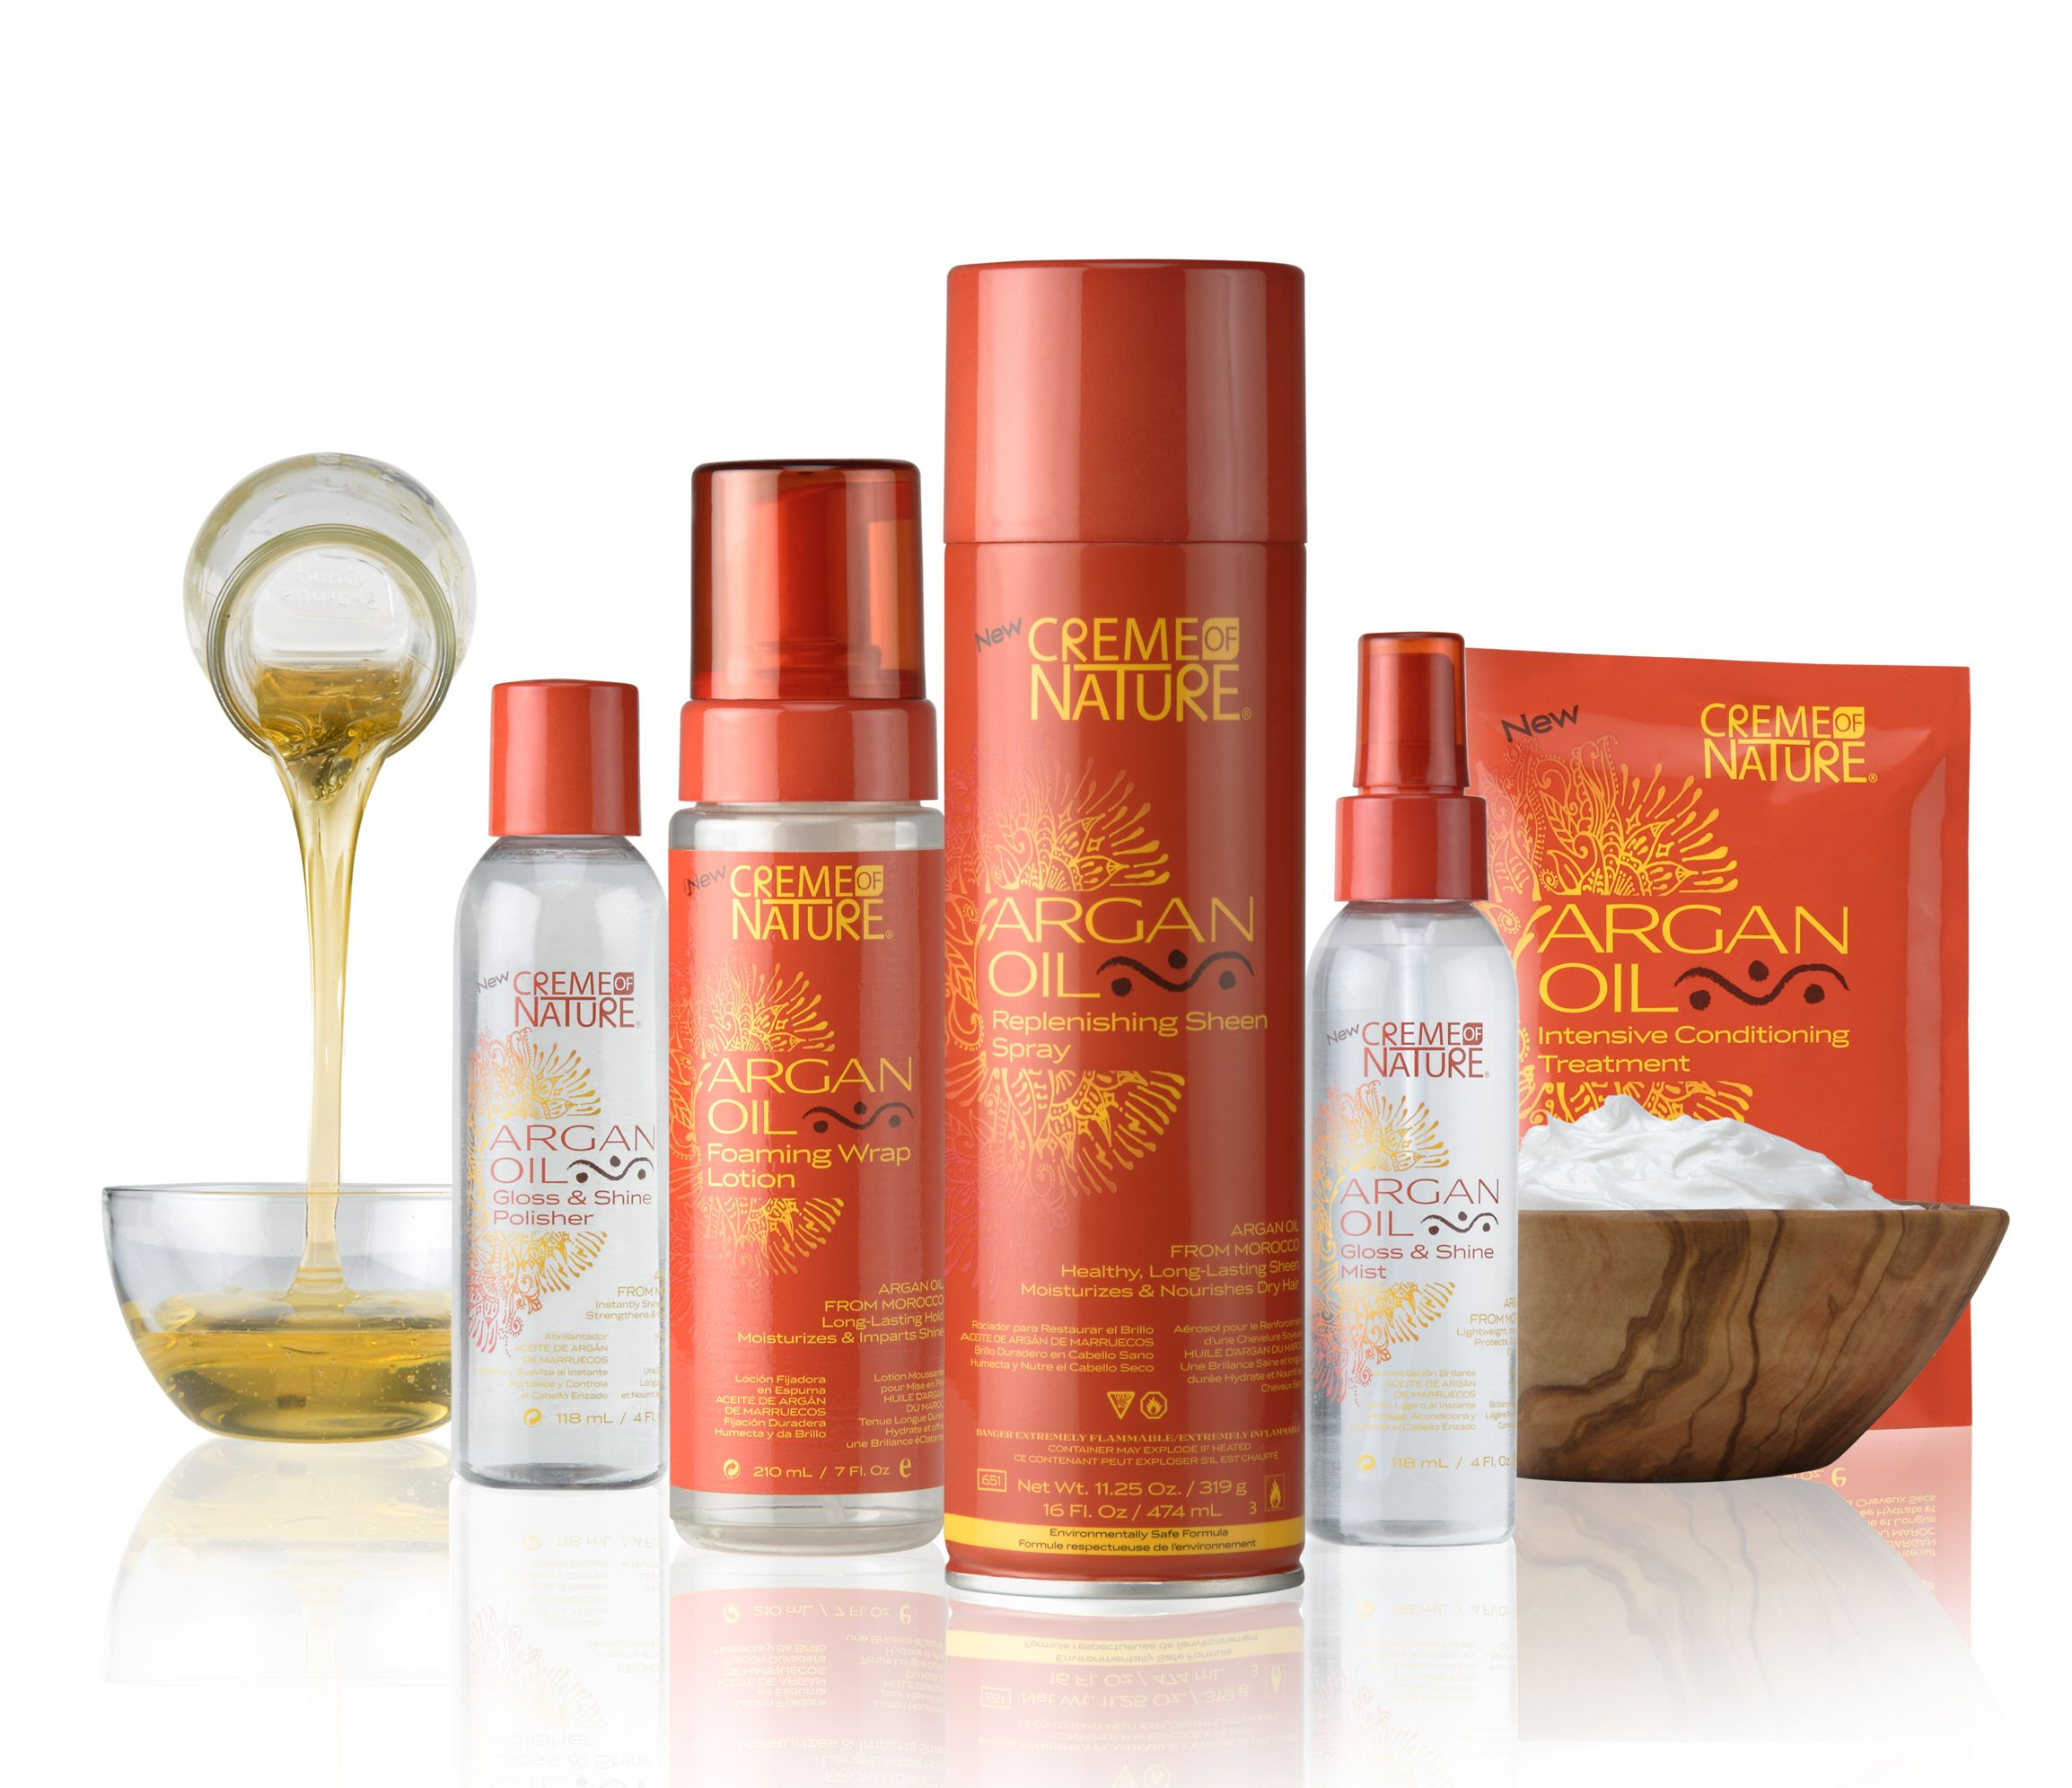 Creme of Nature Introduces New Product Line With Argan Oil